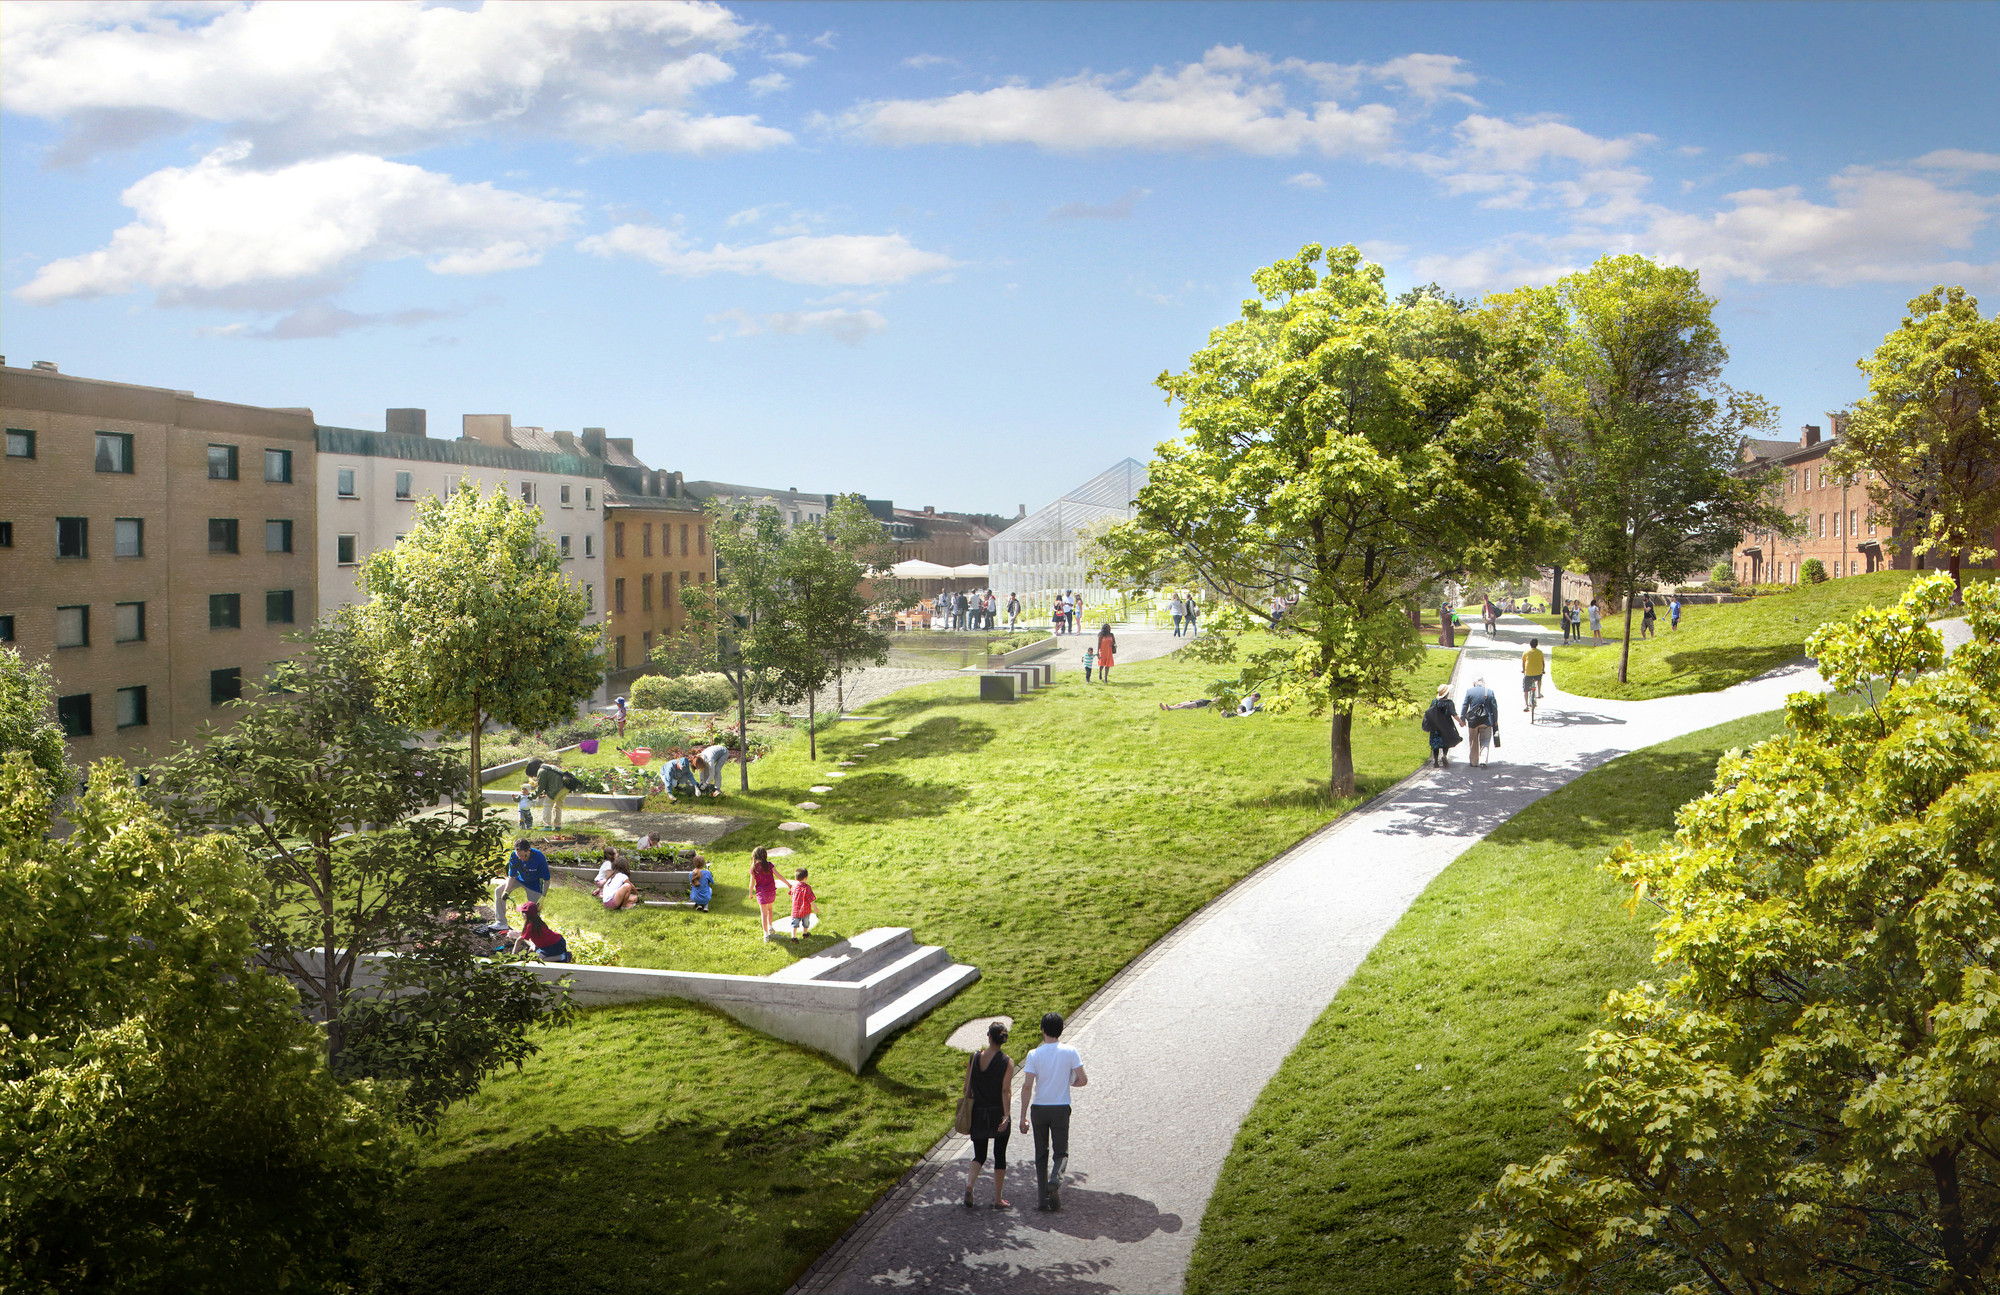 A public park area is planned on top of the housing units. Image © Utopia Arkitekter and LOLA Lovely landskap